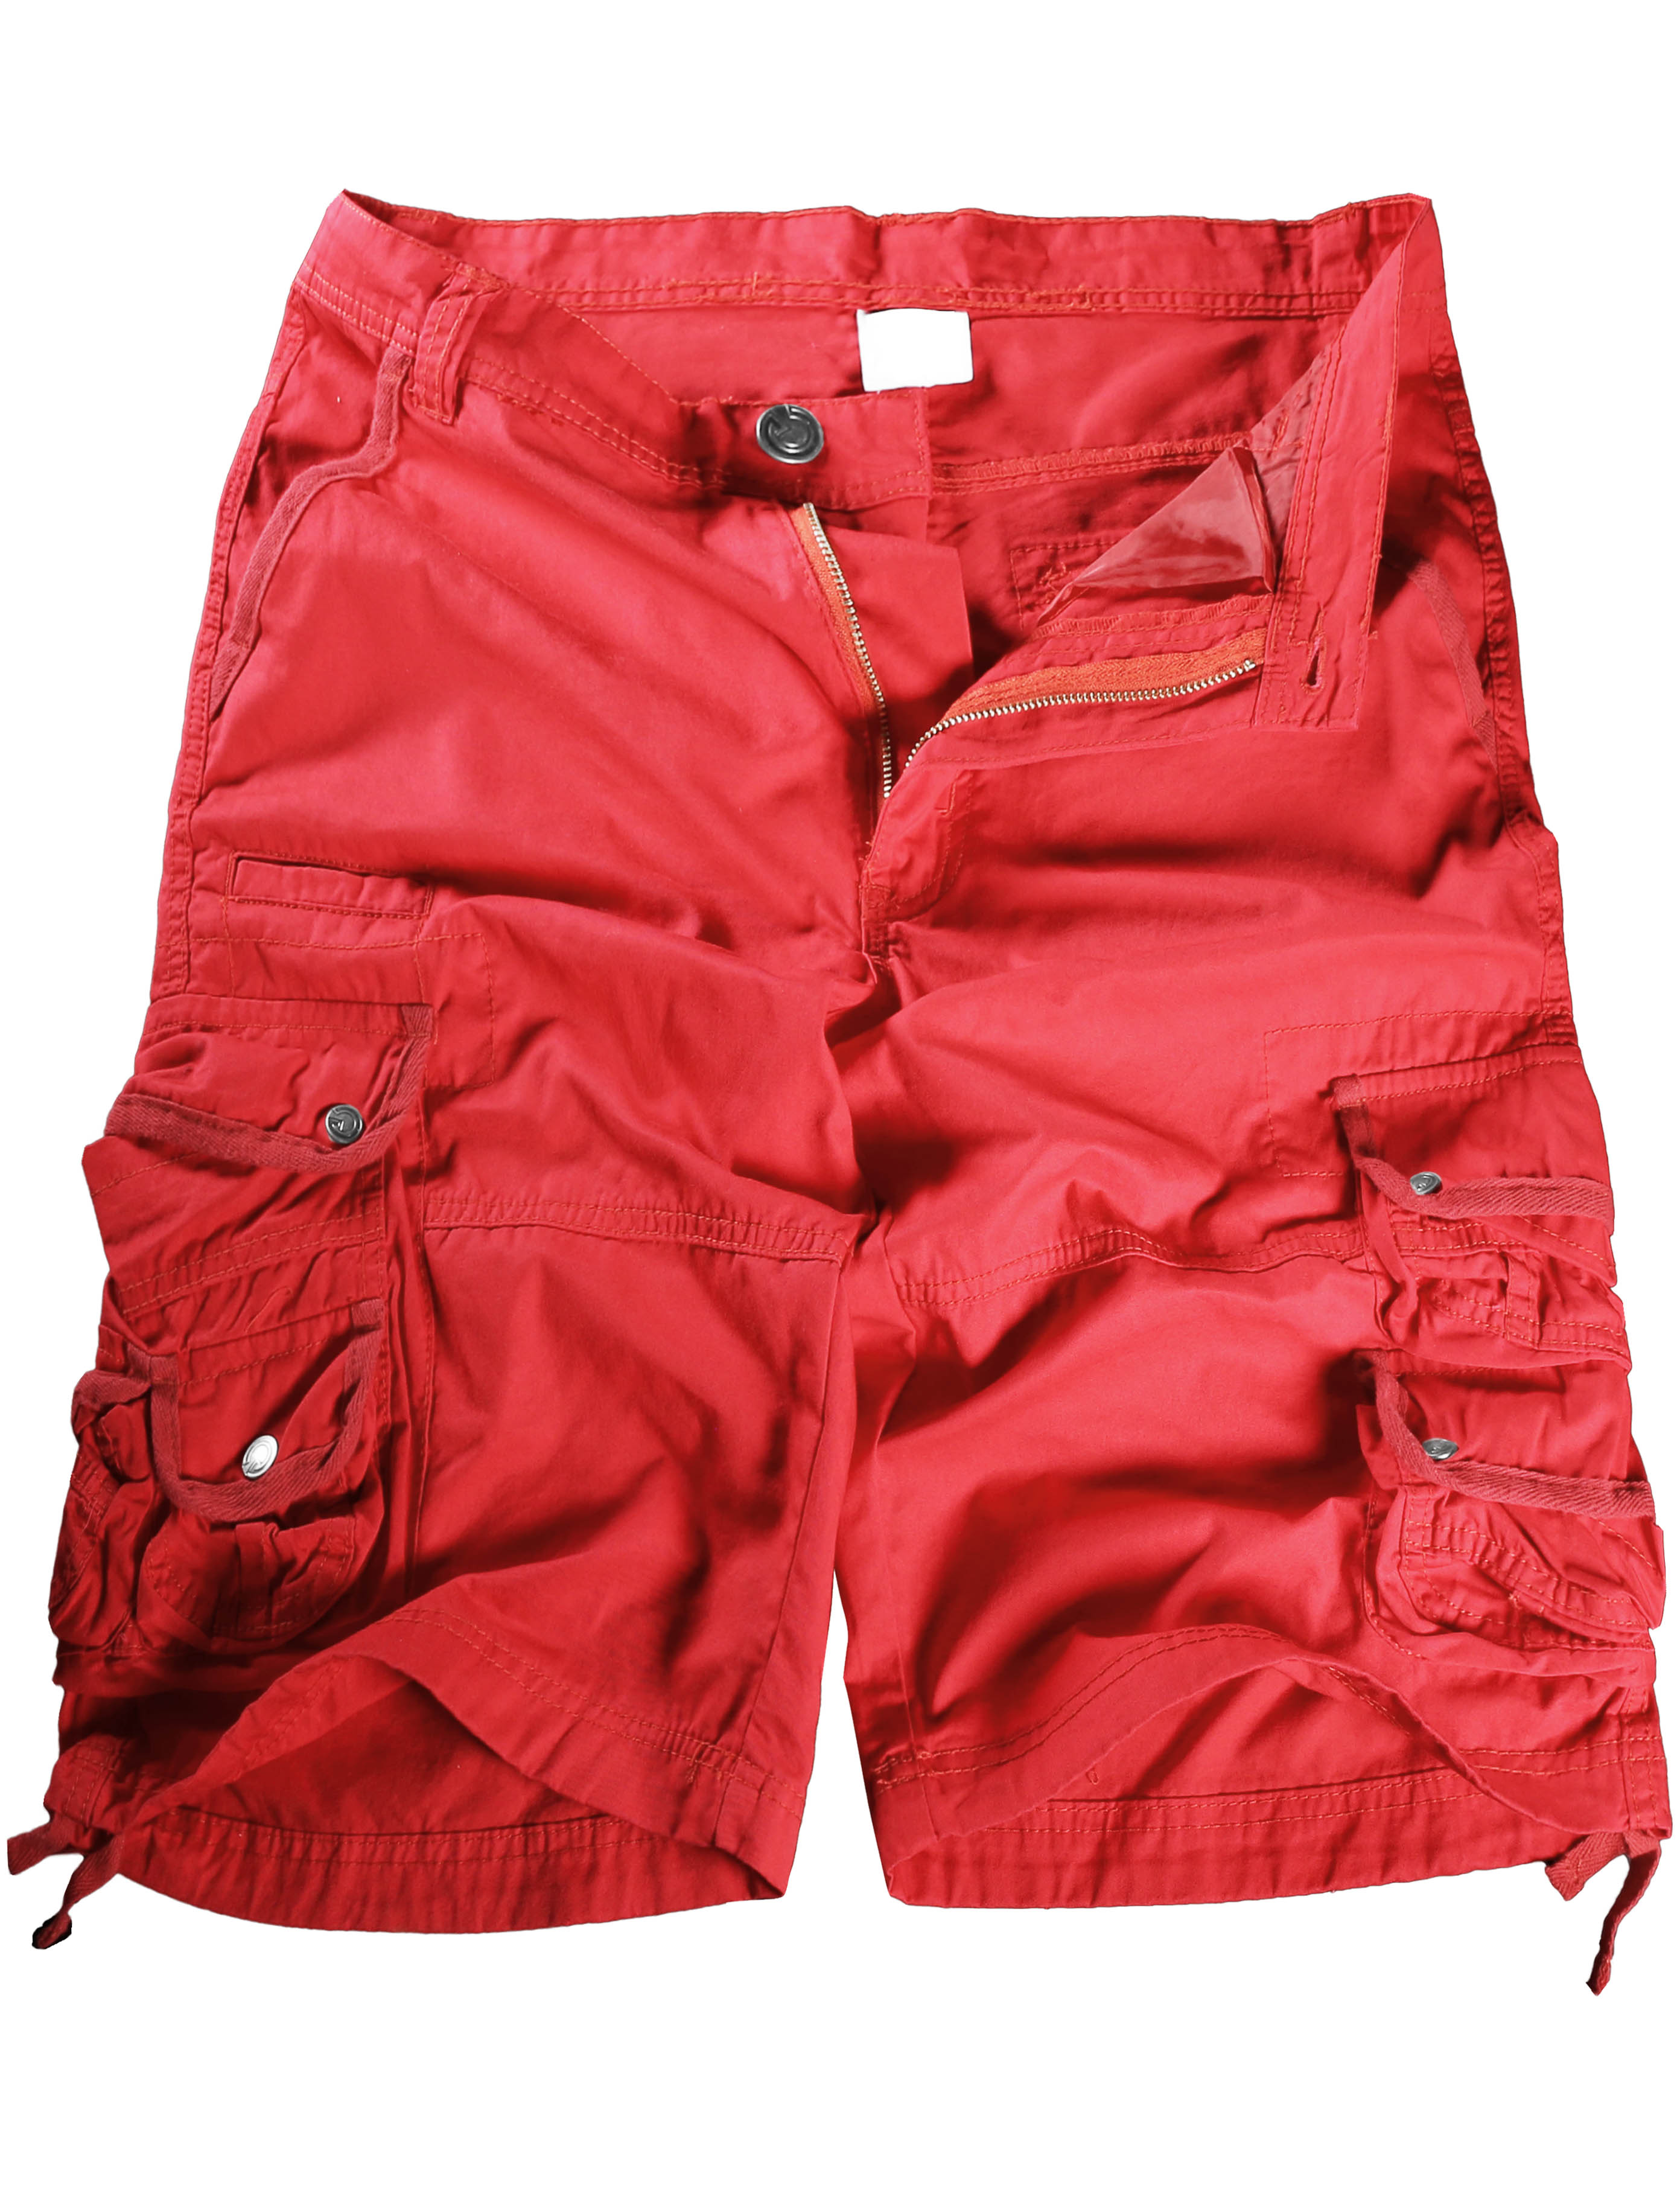 Mens Premium Cargo Shorts Twill Cotton Pants Multi Pocket Work Outdoor Utility